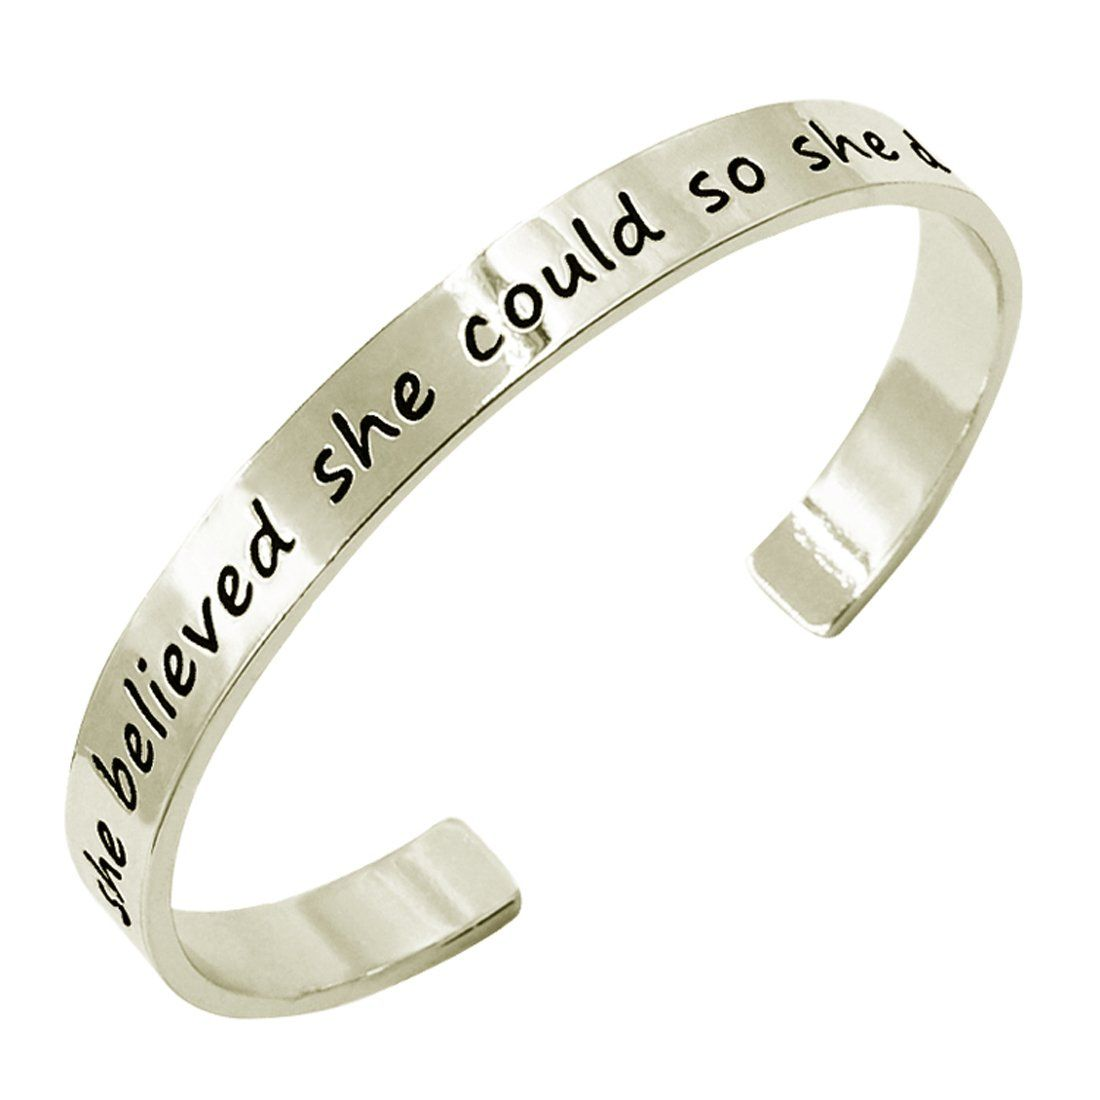 believed she alovesoul com bangle jewelry inspirational dp expandable amazon did so bracelet could message